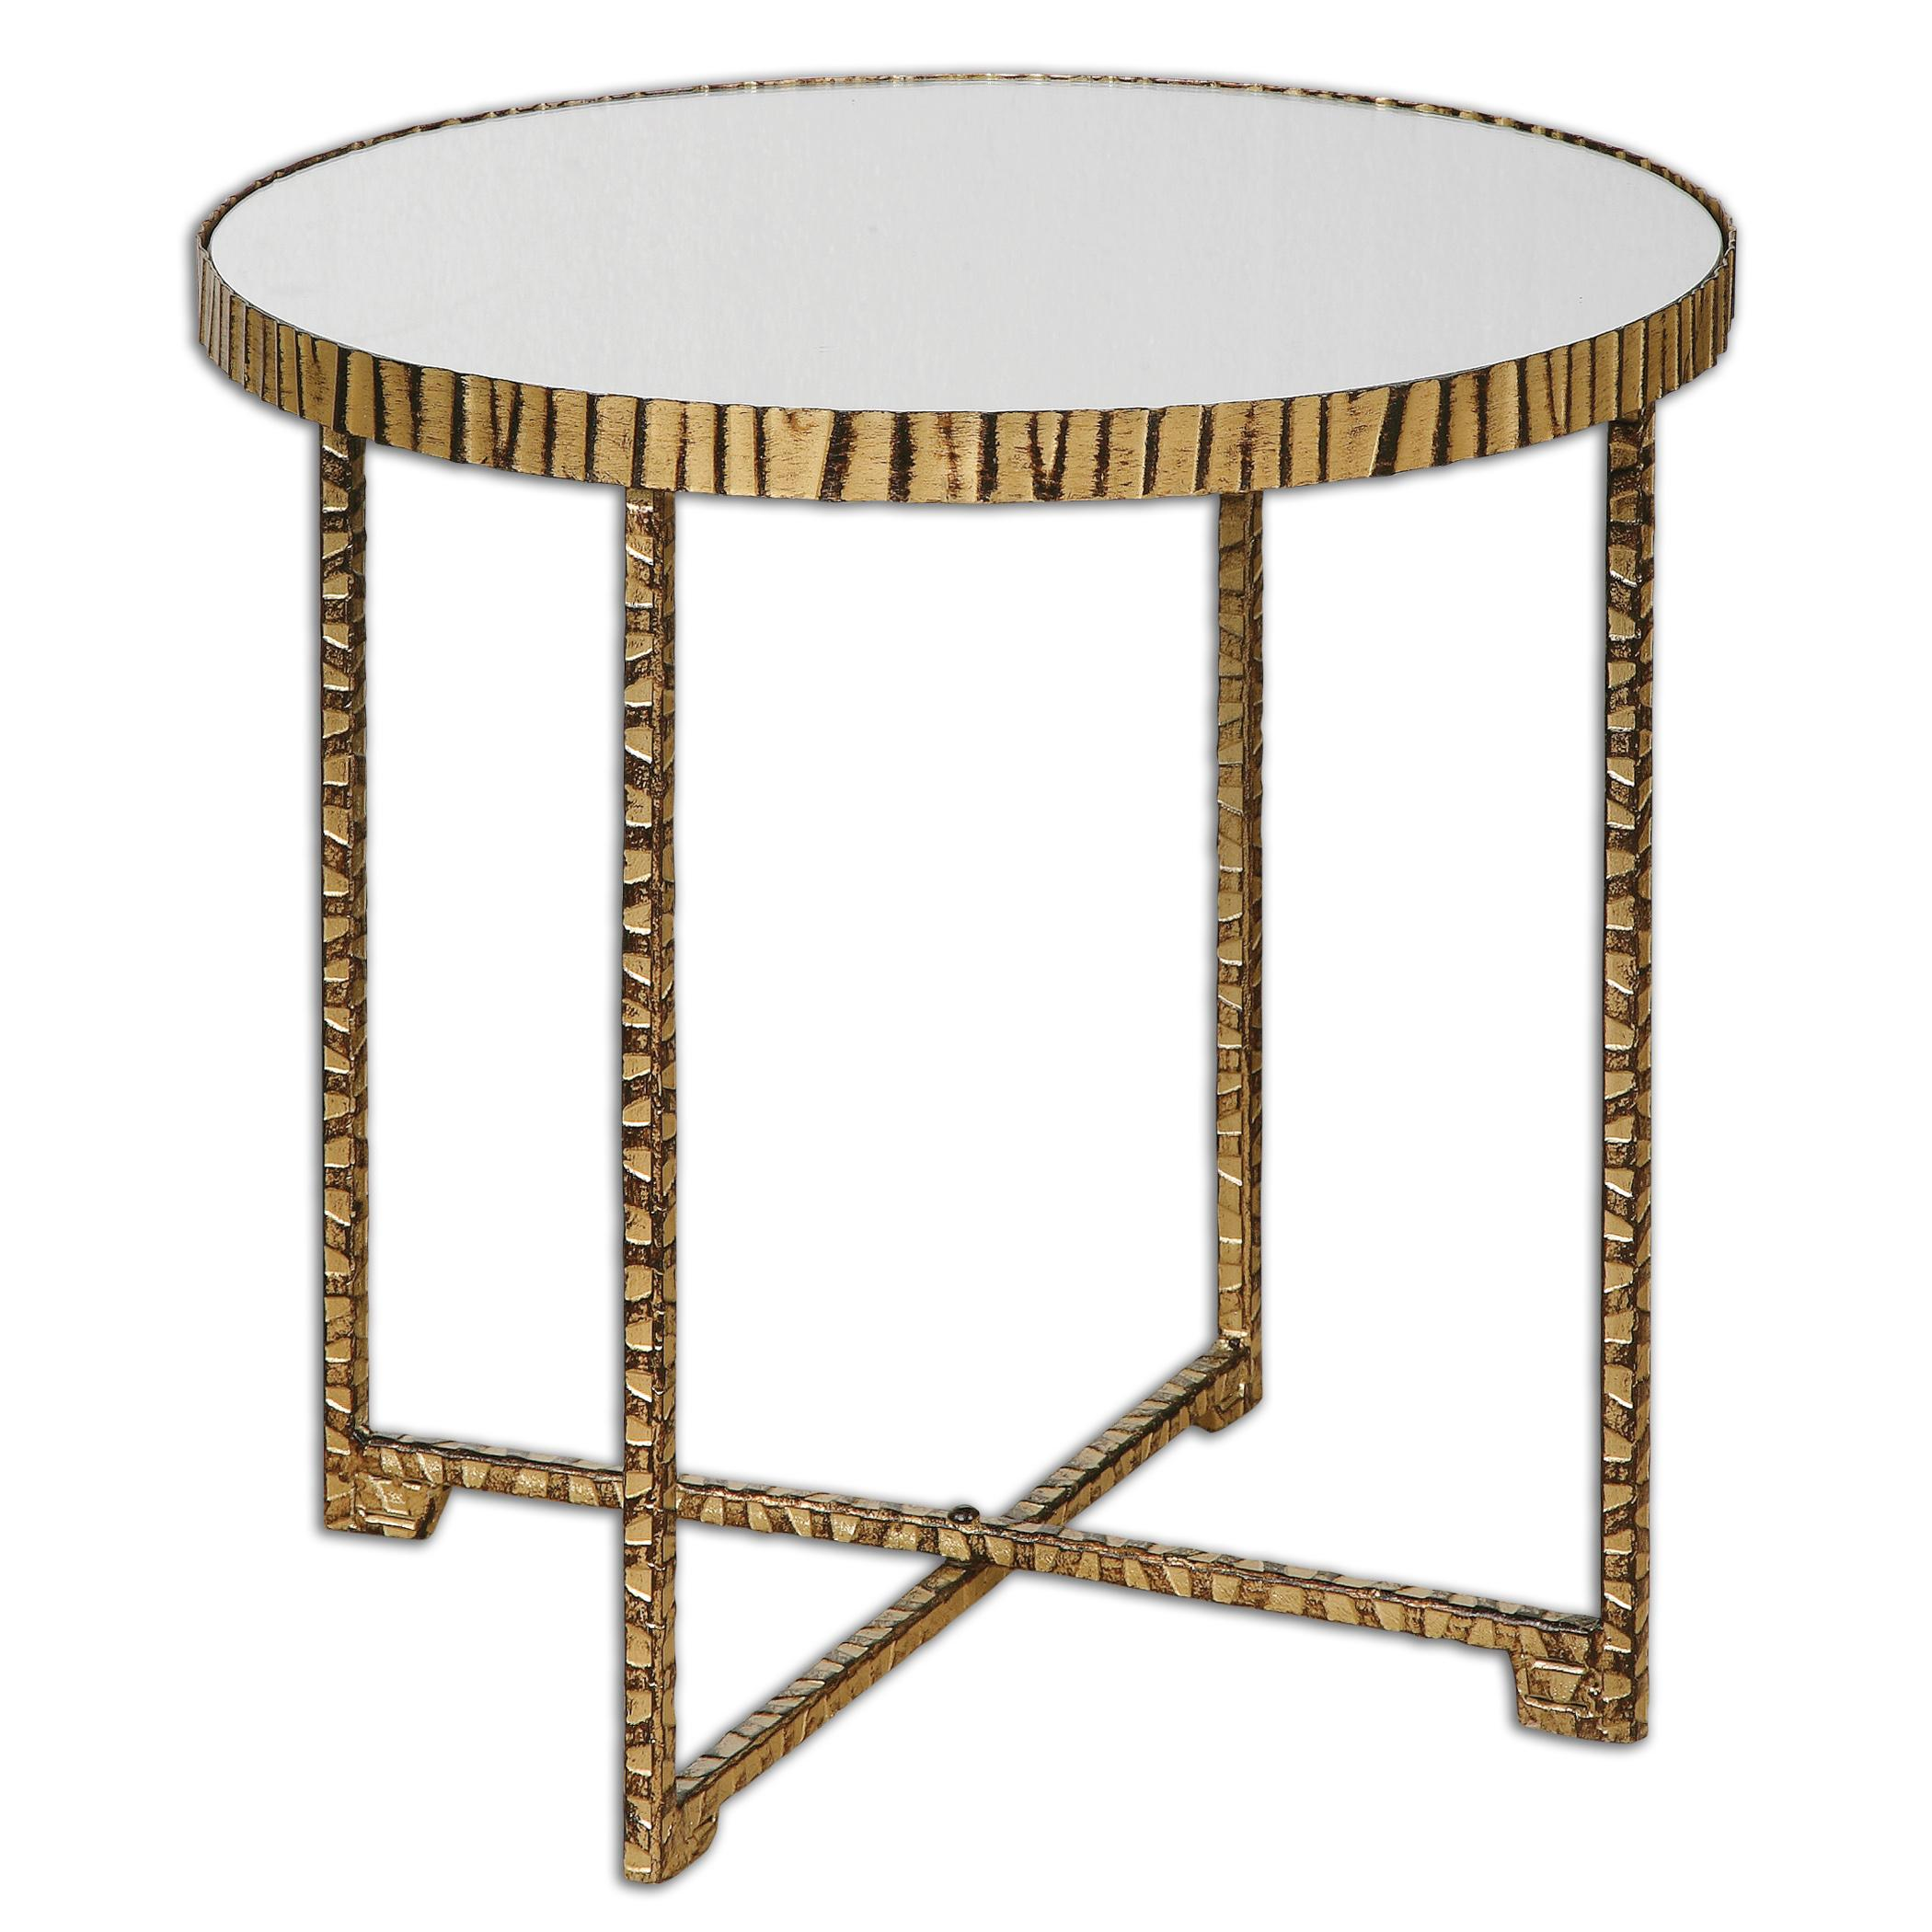 Uttermost Accent Furniture Myeshia Round Accent Table - Item Number: 24433